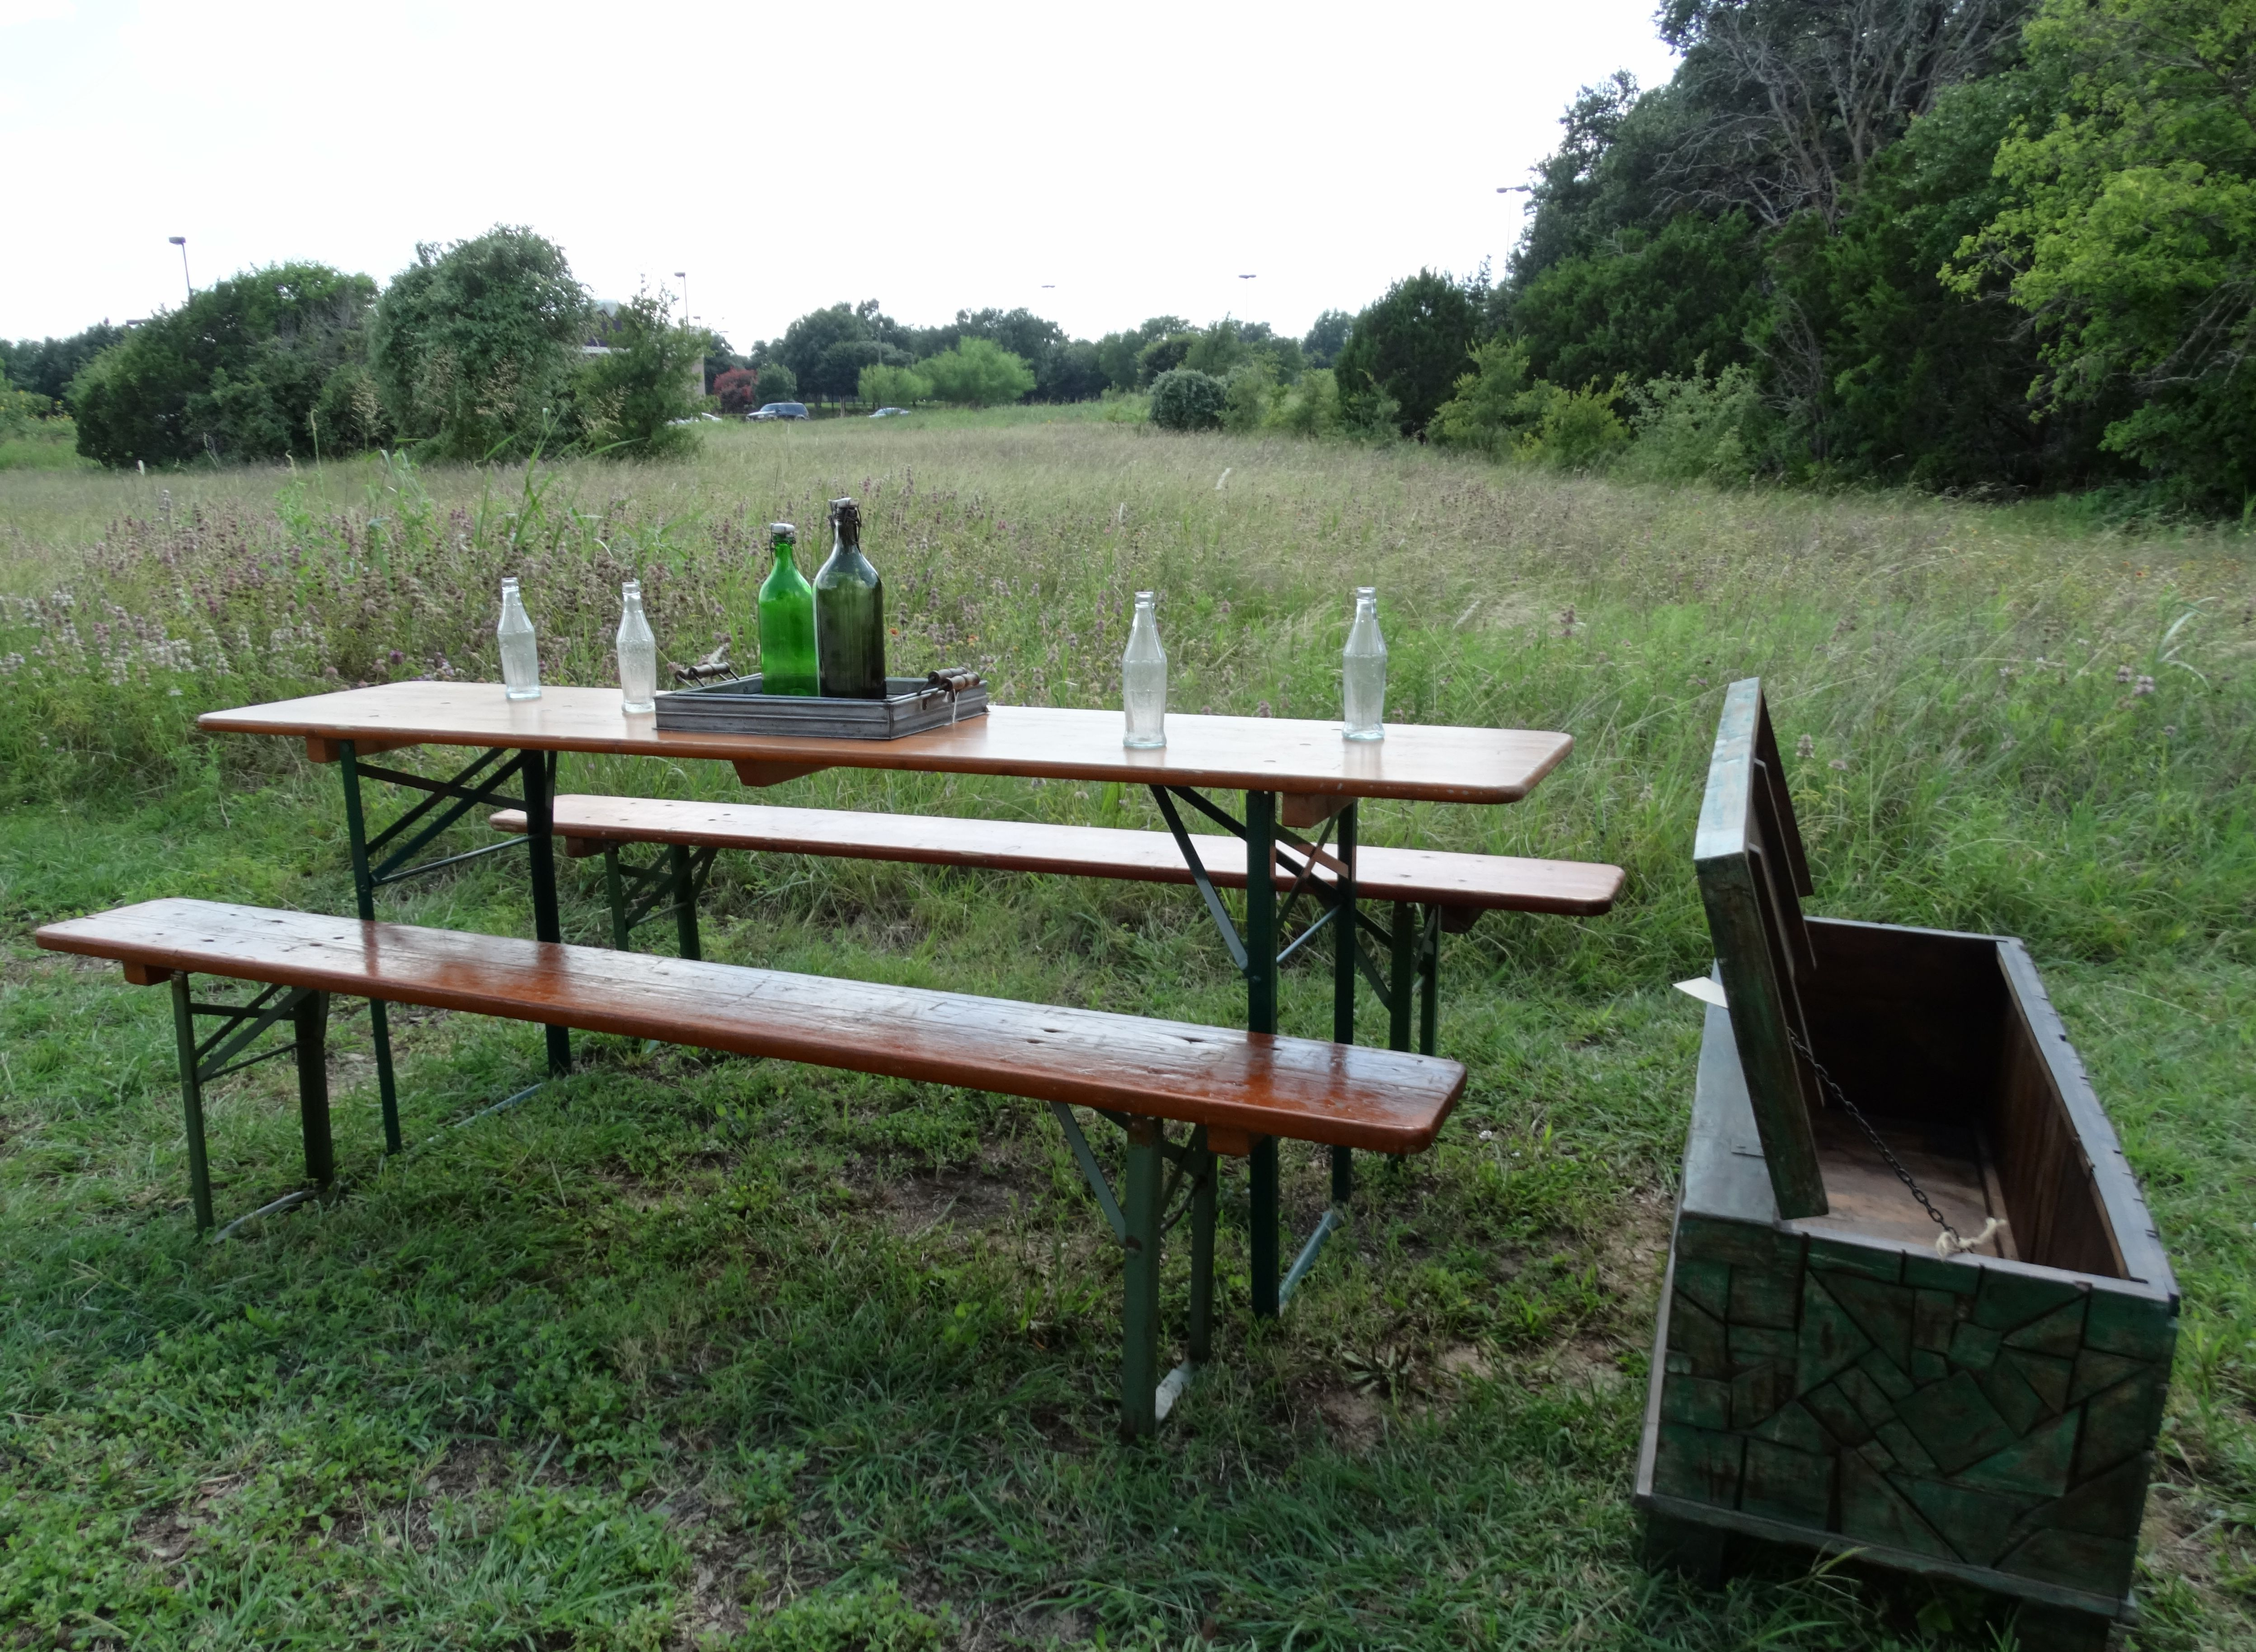 This Beer Garden Table Was Made From Spruce In The 1980s In The Stuttgart Area Of Southwest Germany Although These Lo Garden Table Upscale Furniture Furniture